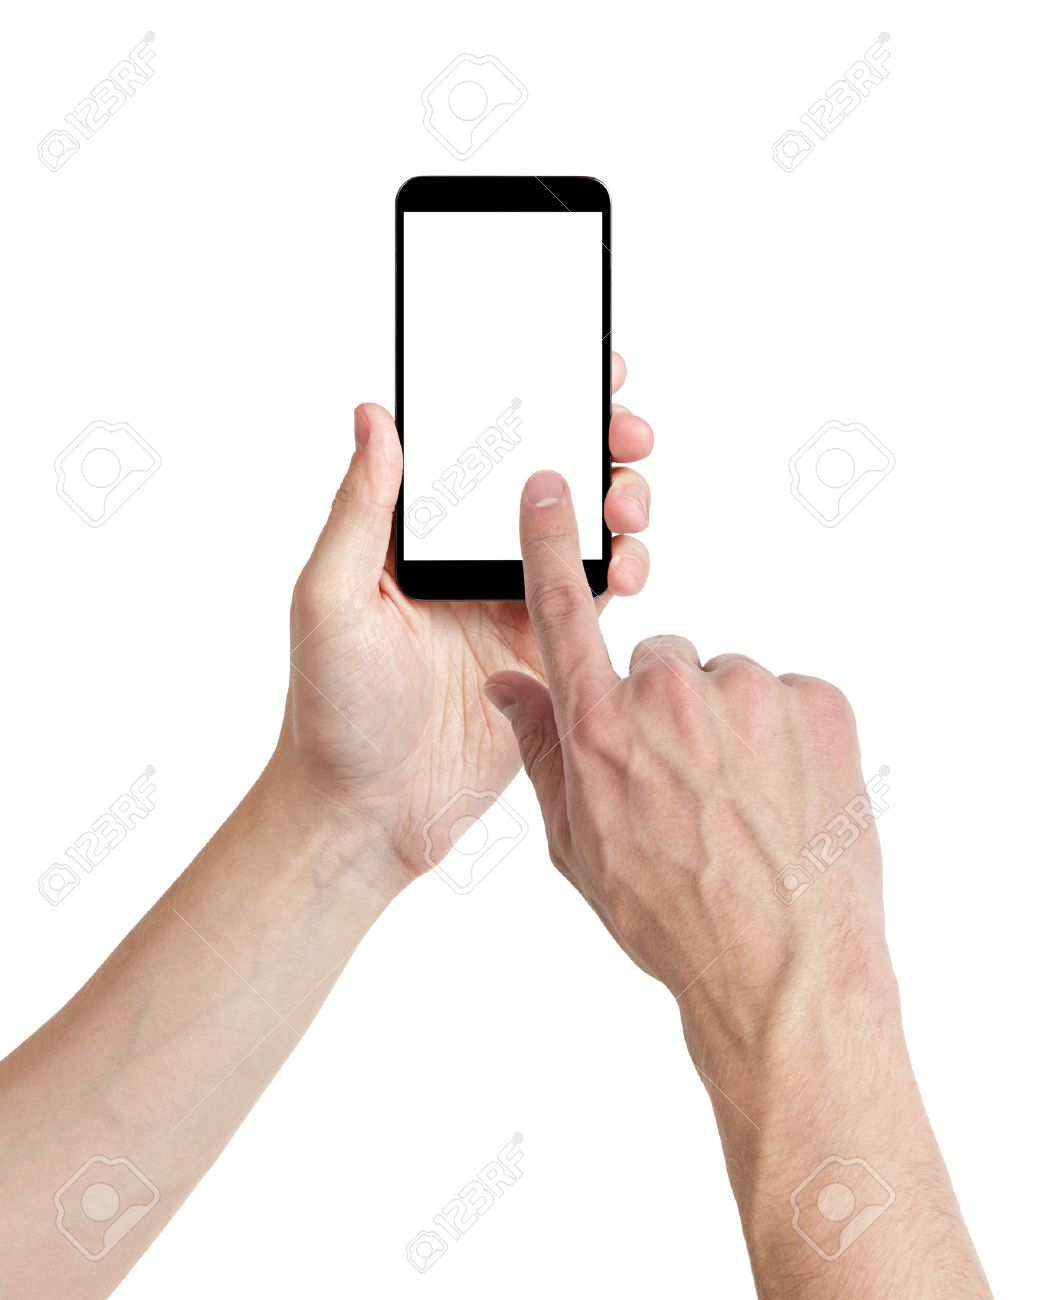 adult man hands using mobile phone with white screen, isolated Stock Photo - 23467163